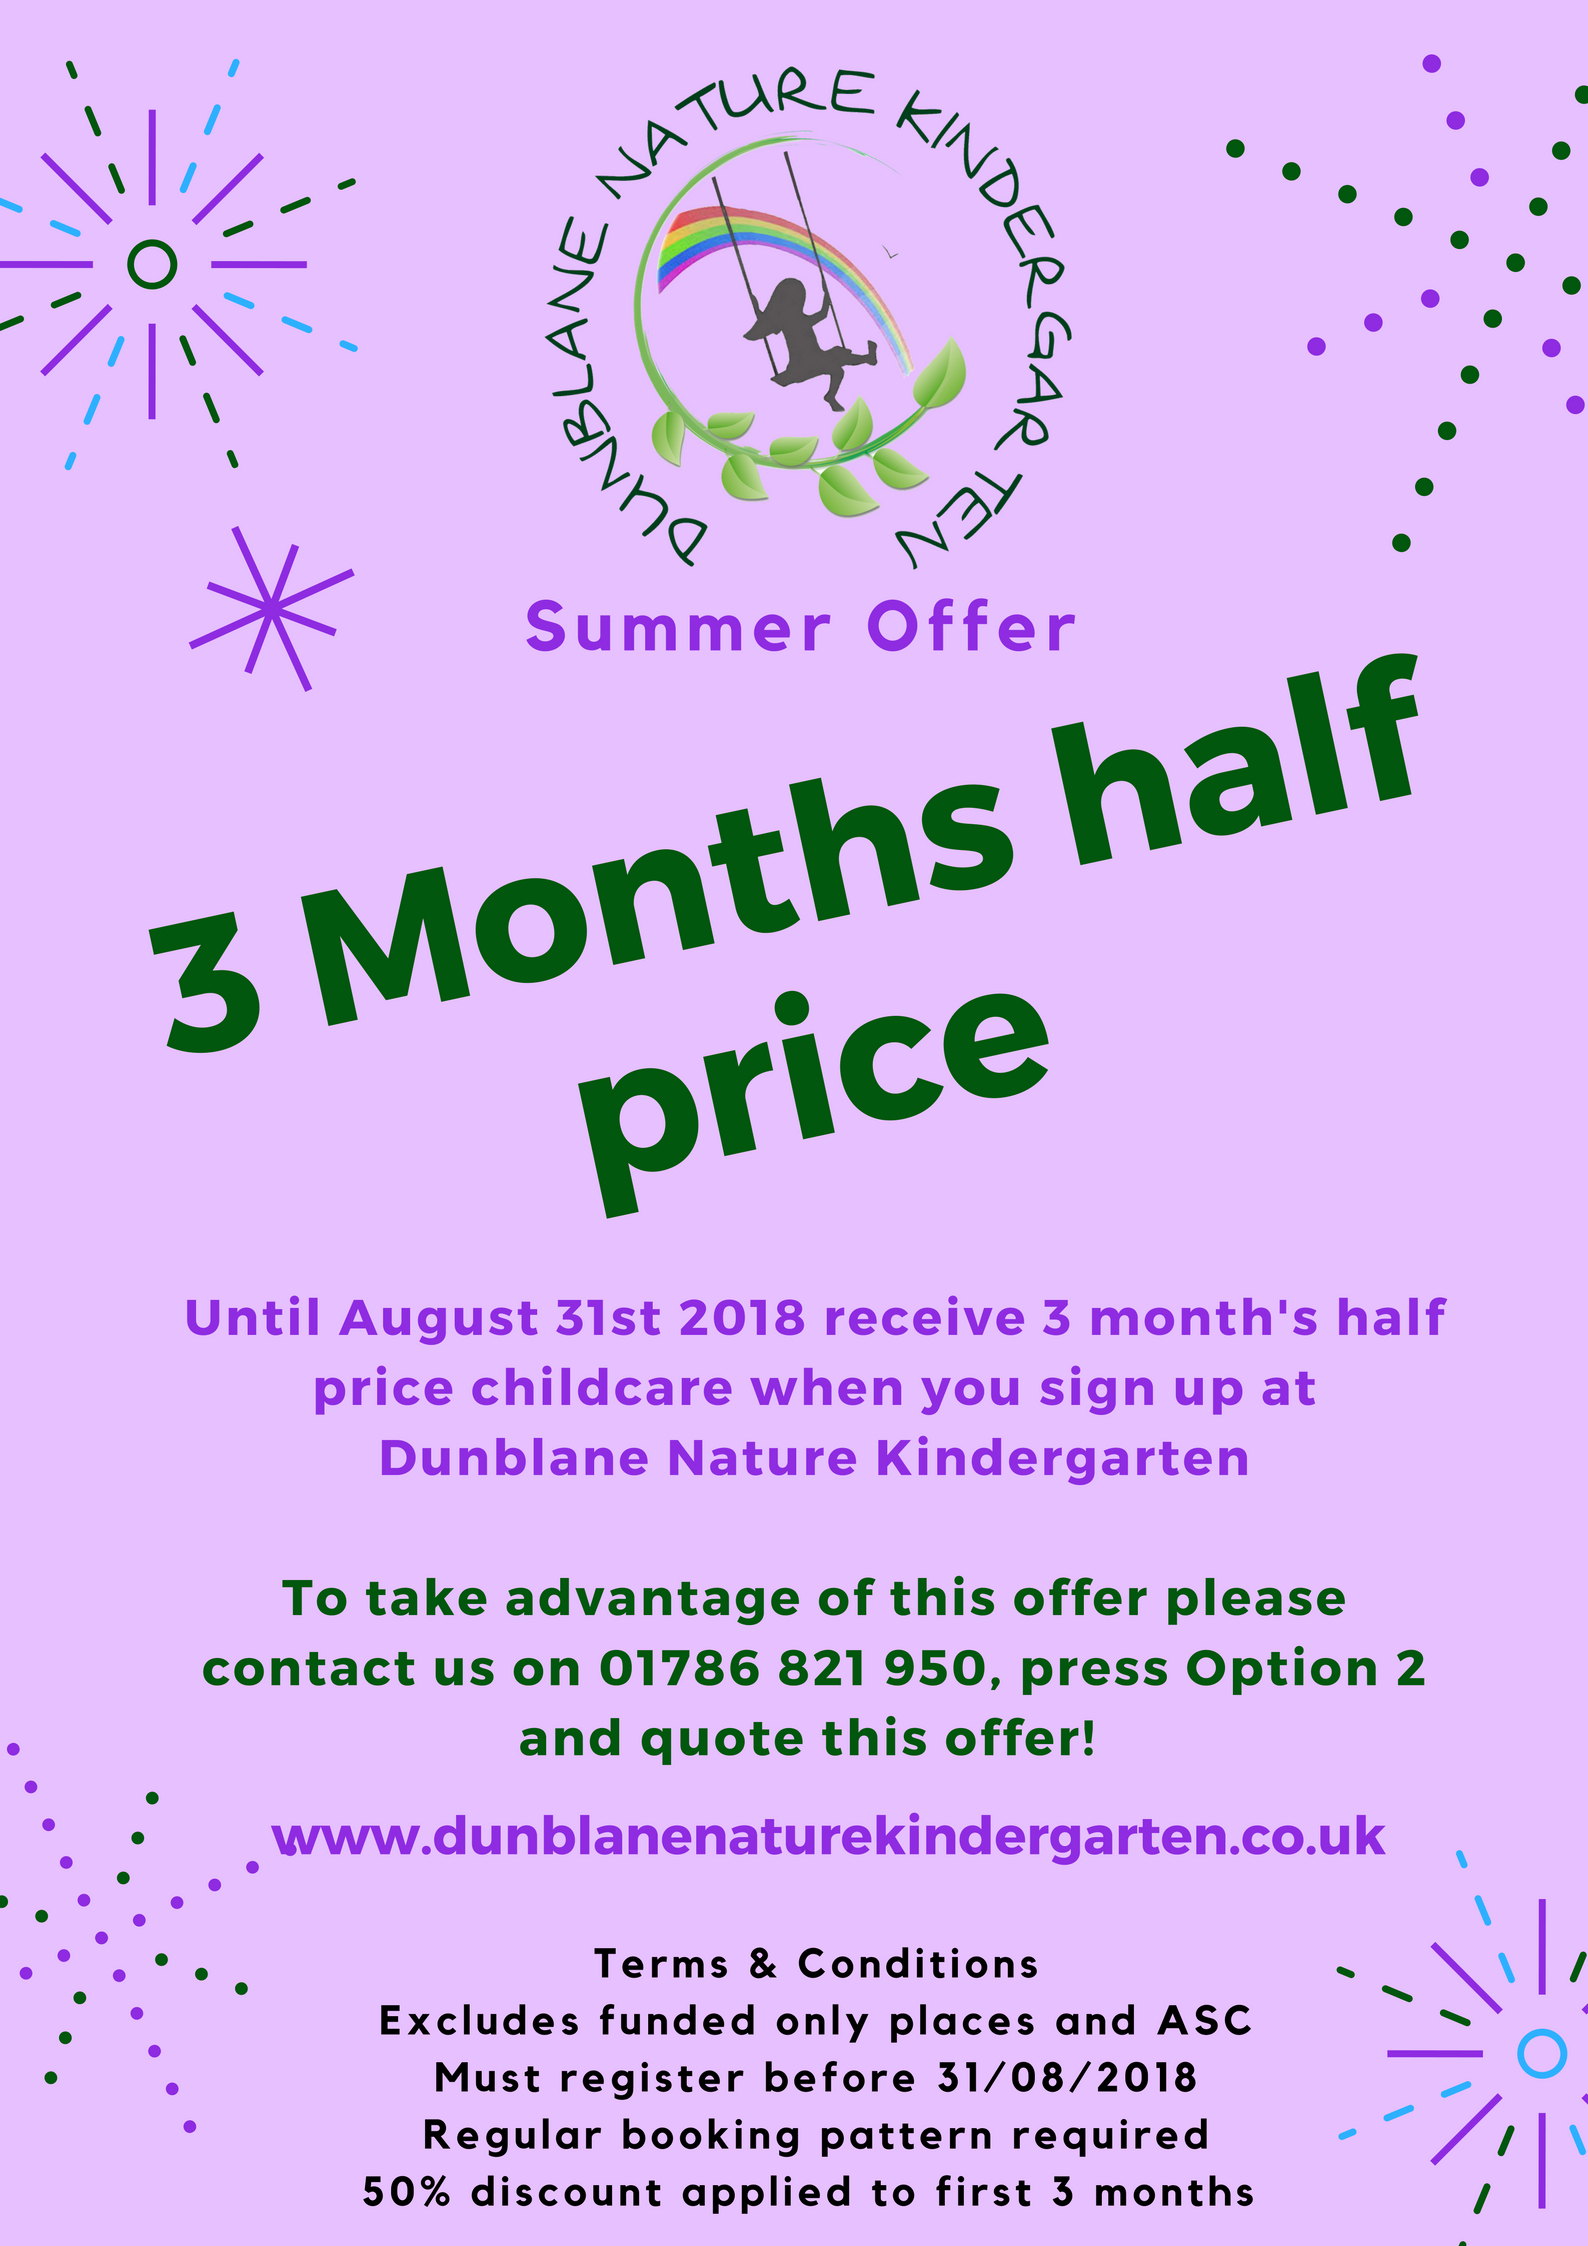 DNK Nursery Summer Offer